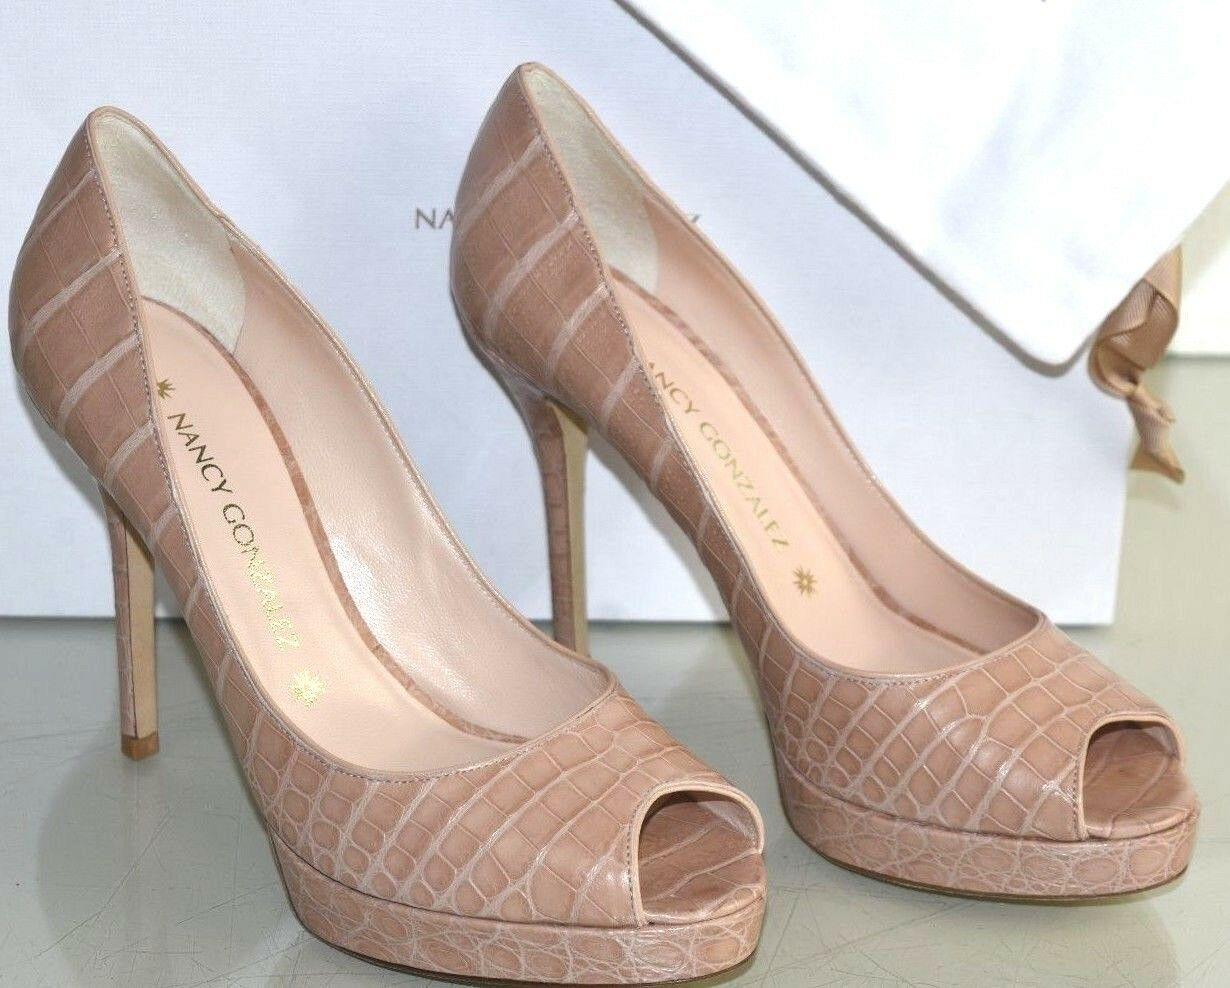 3150 NEW Nancy Gonzalez MS G 105 Crocodile Peep Toe Platform Pump NUDE shoes 39